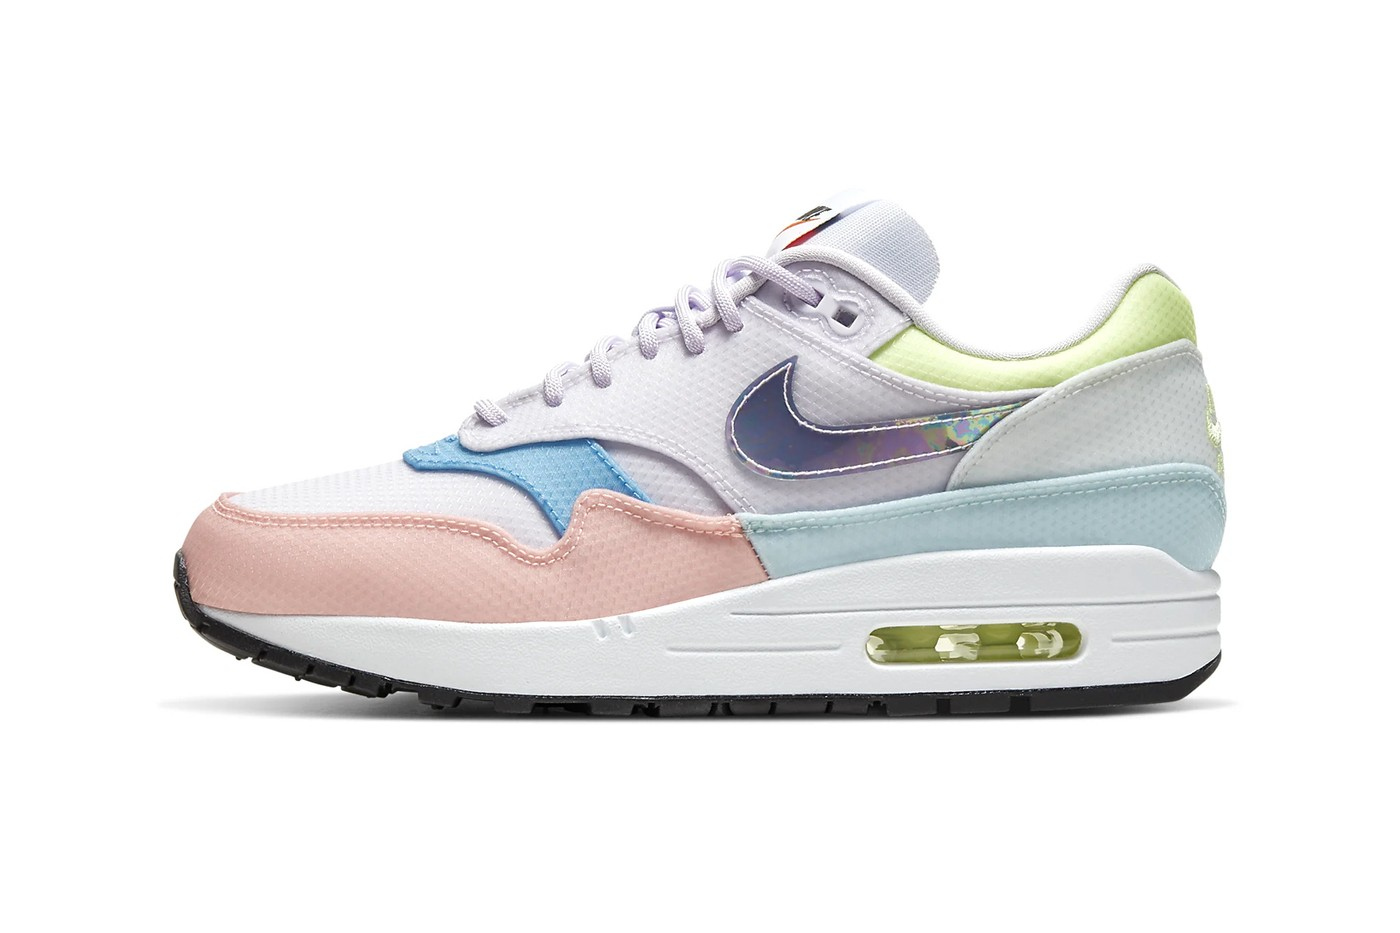 nike Air Max 1 Barely Grape Hyper Turquoise